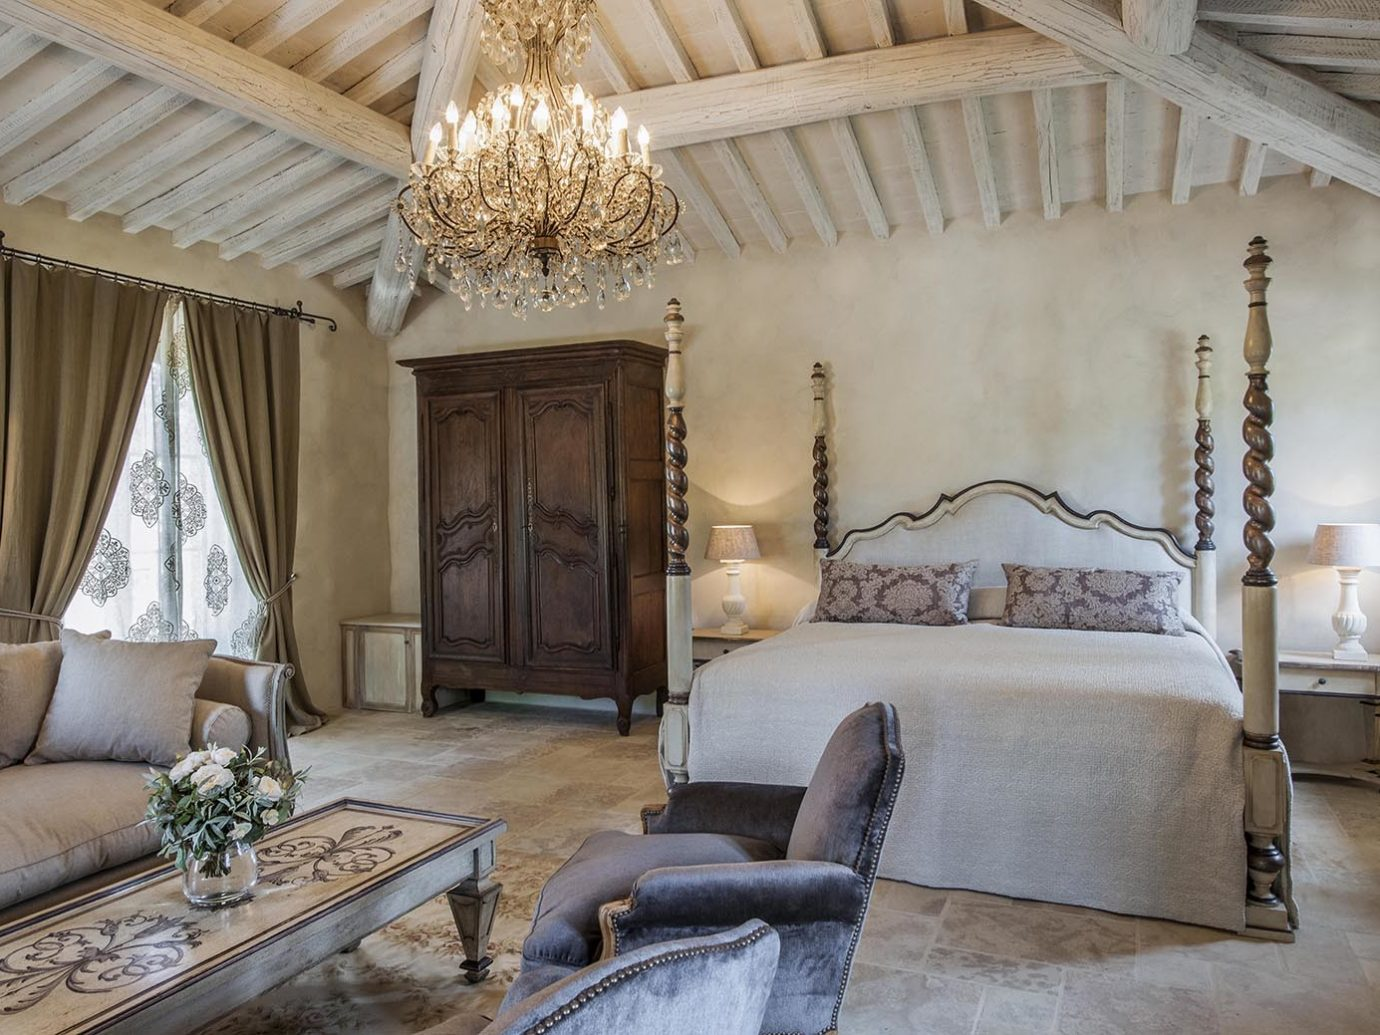 Bedroom at Borgo Santo Pietro